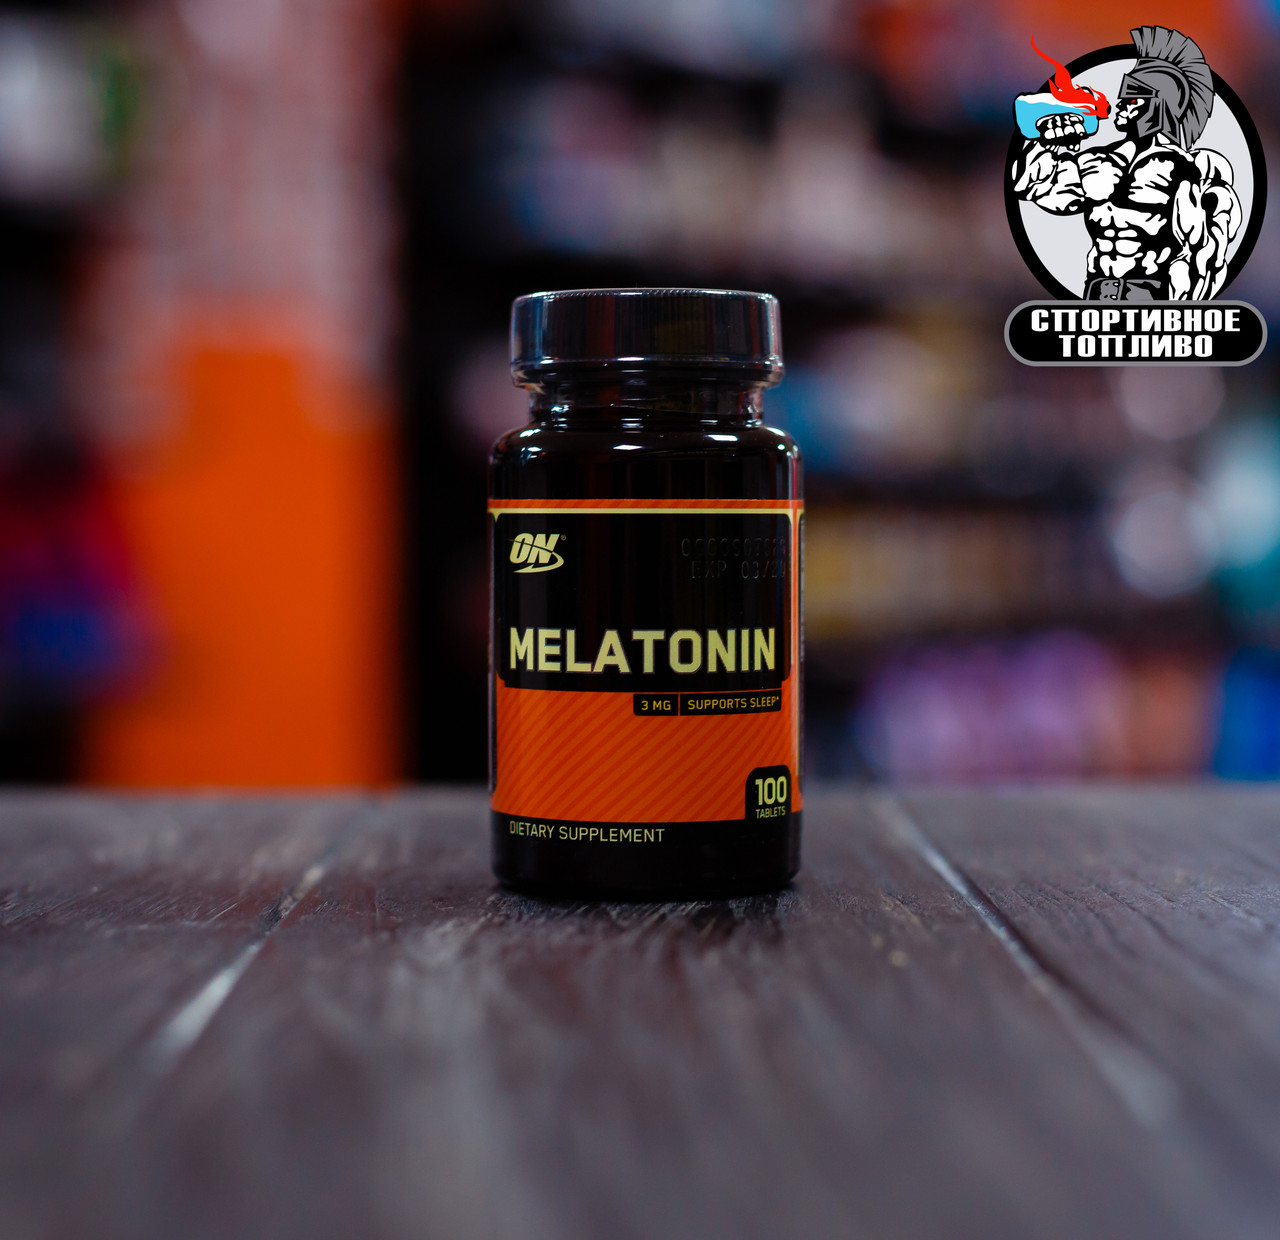 ON - Melatonin 100капс/100порций